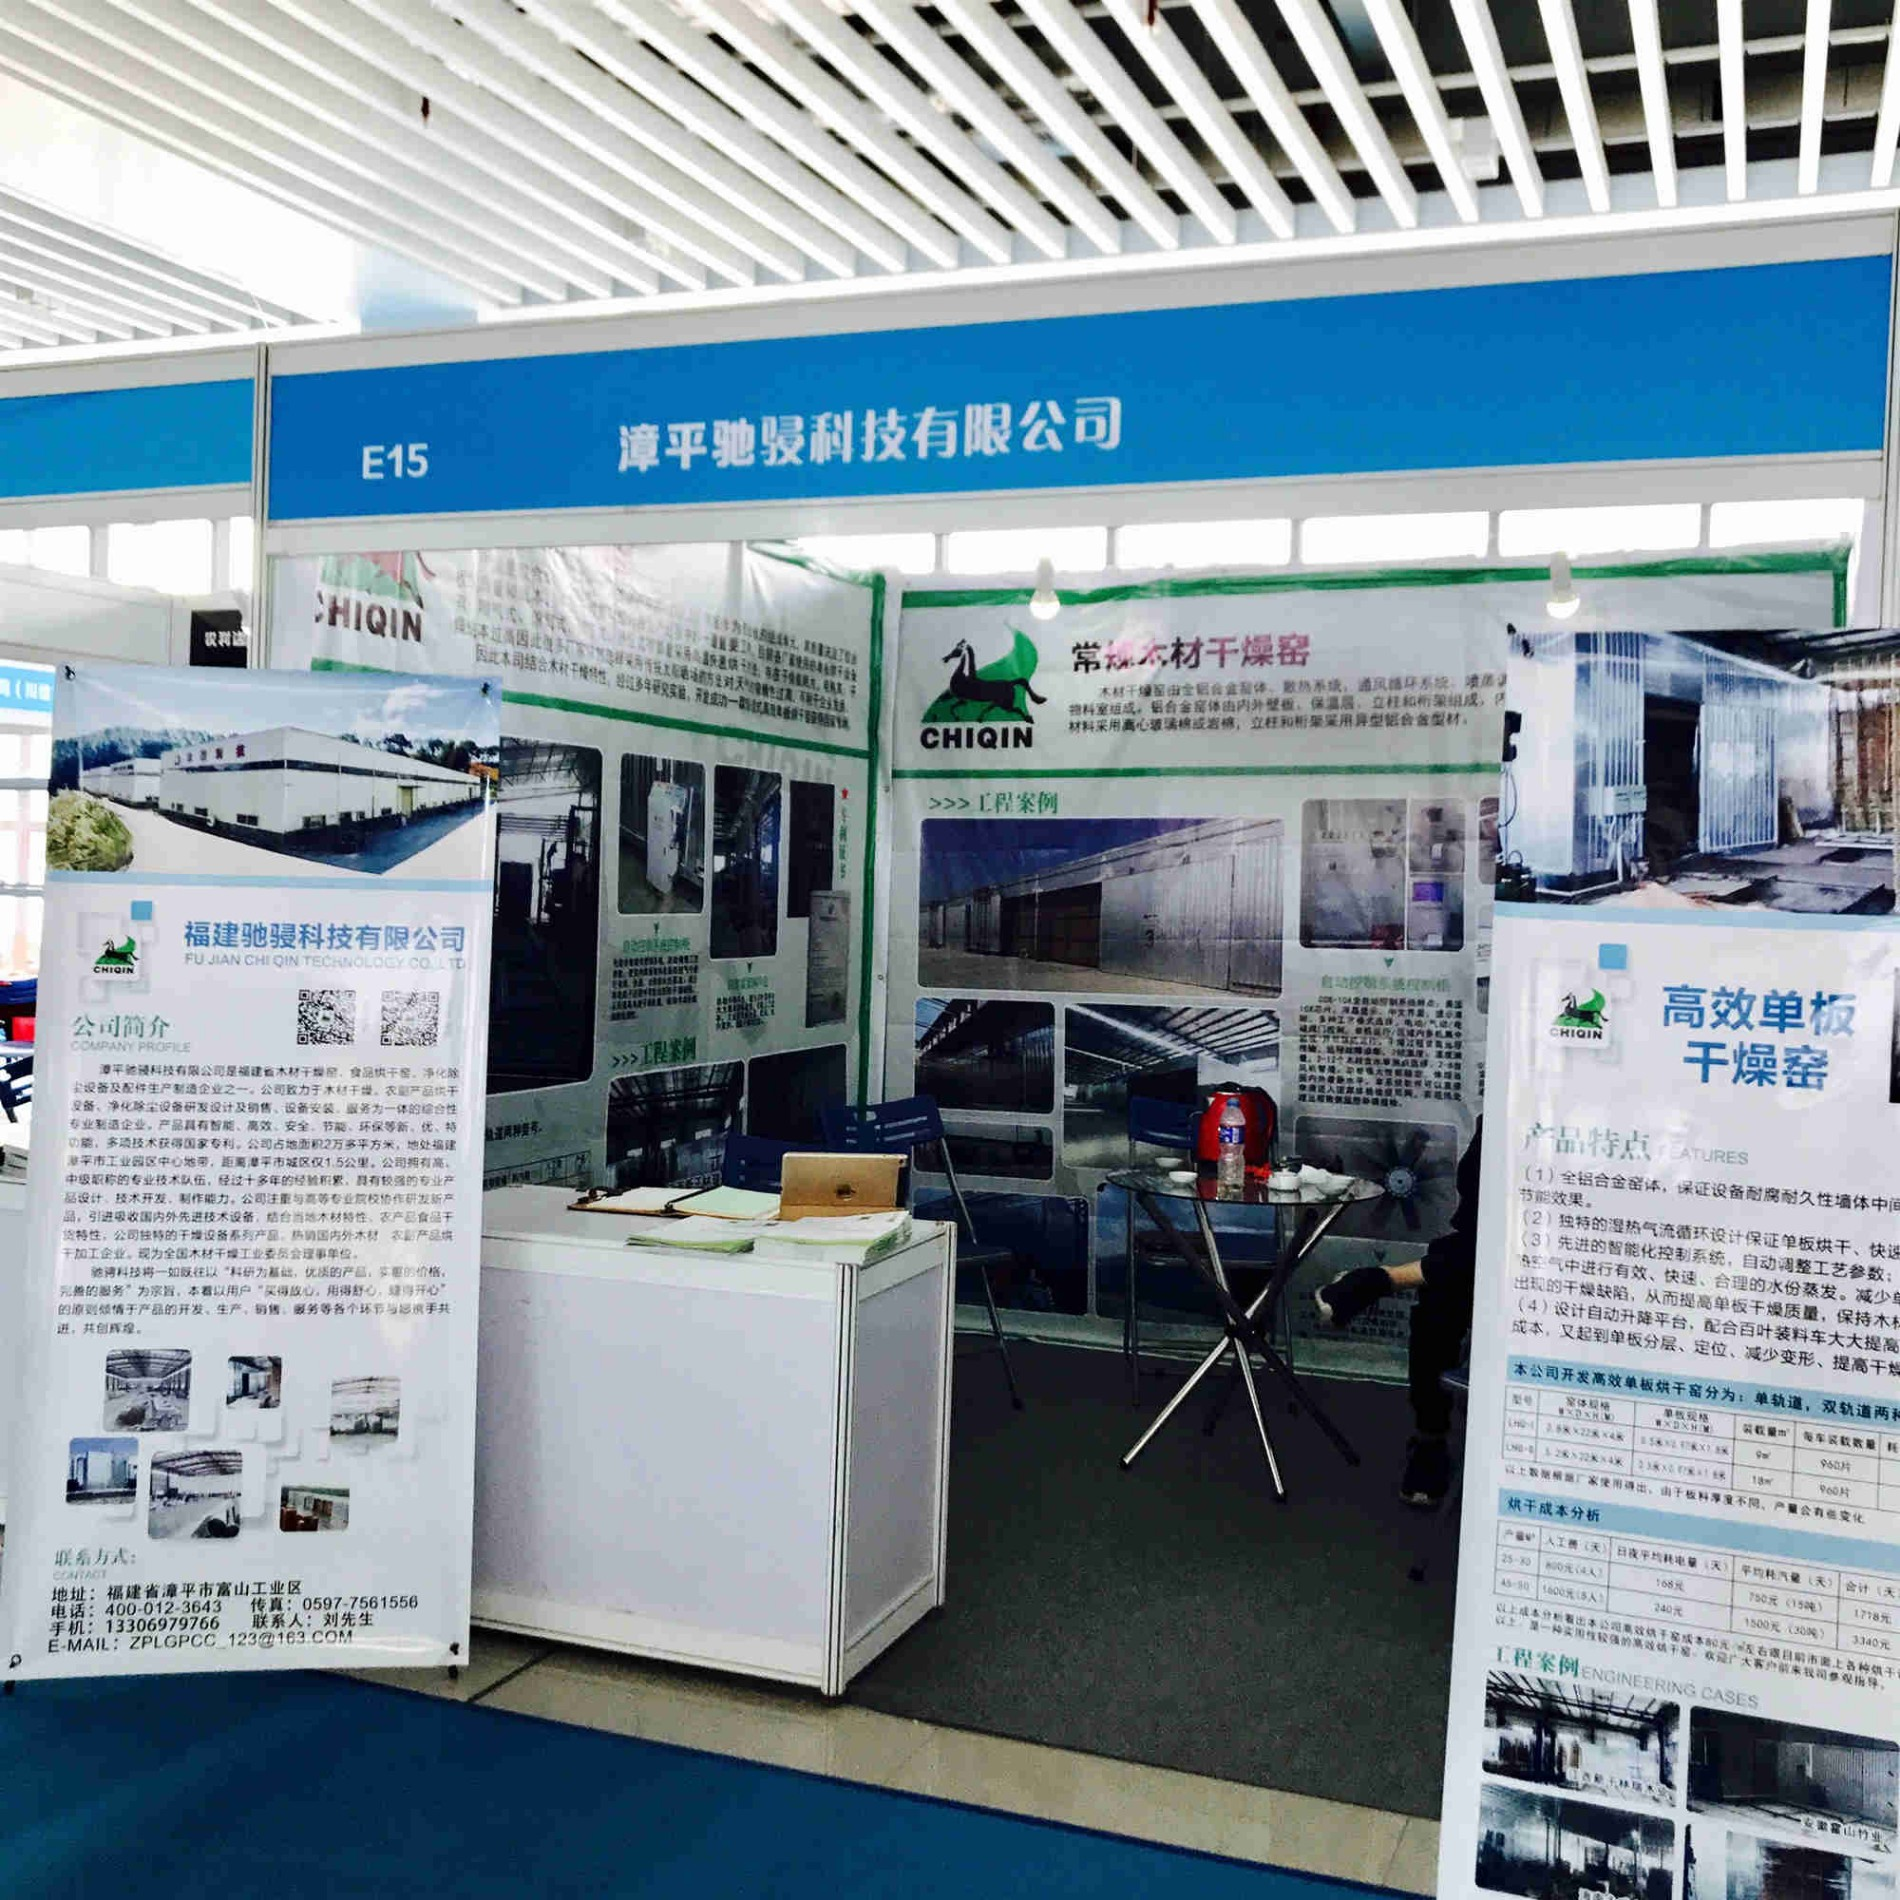 Jiangxi Nankang Woodworking and Furniture Accessories Expo